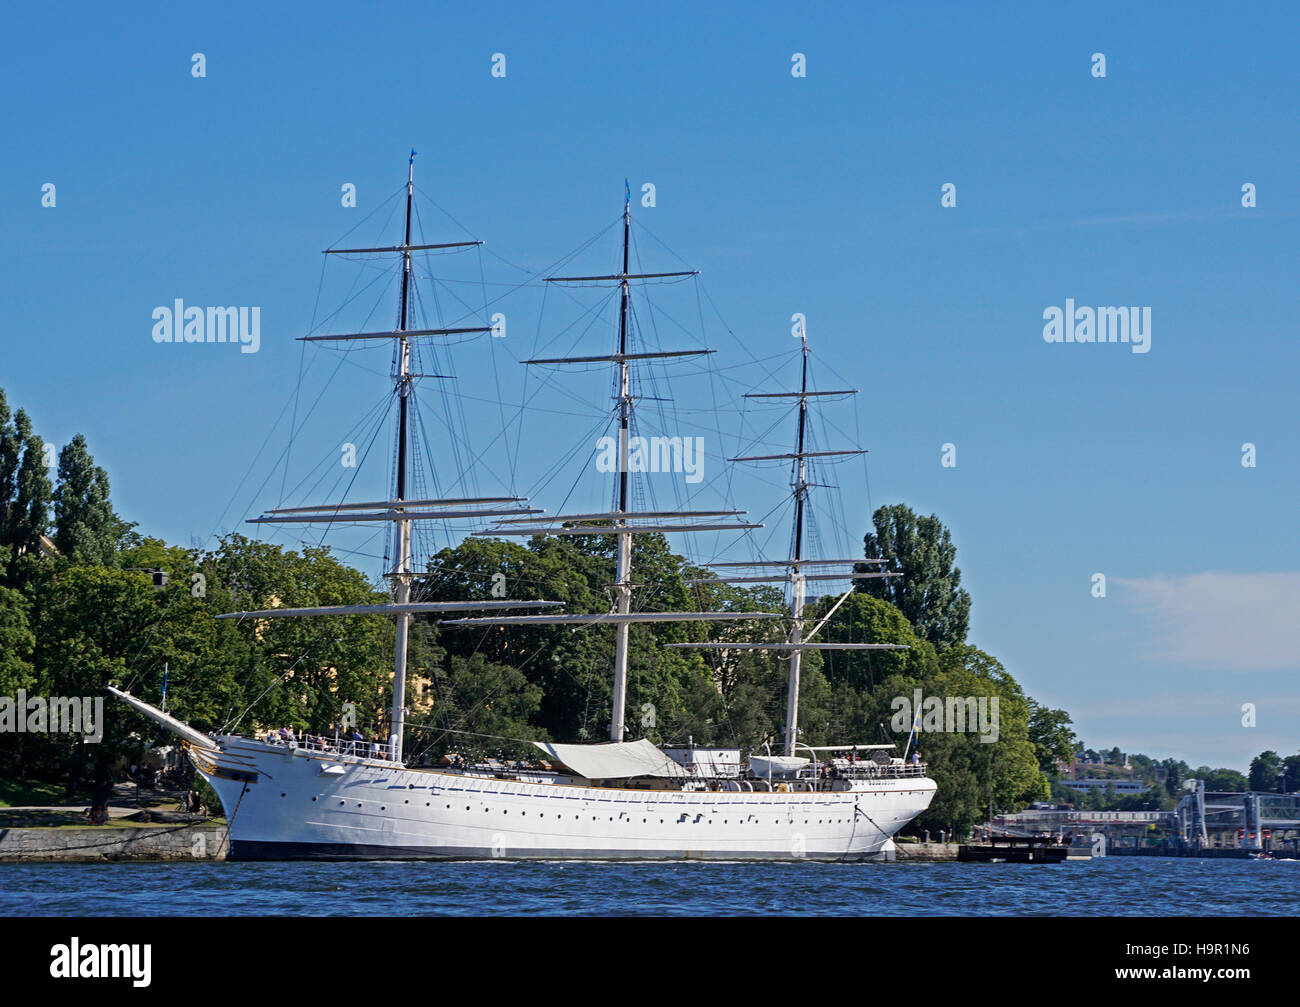 af Chapman tall ship used as a youth hostel on Stockholm harbor waterfront. Stock Photo